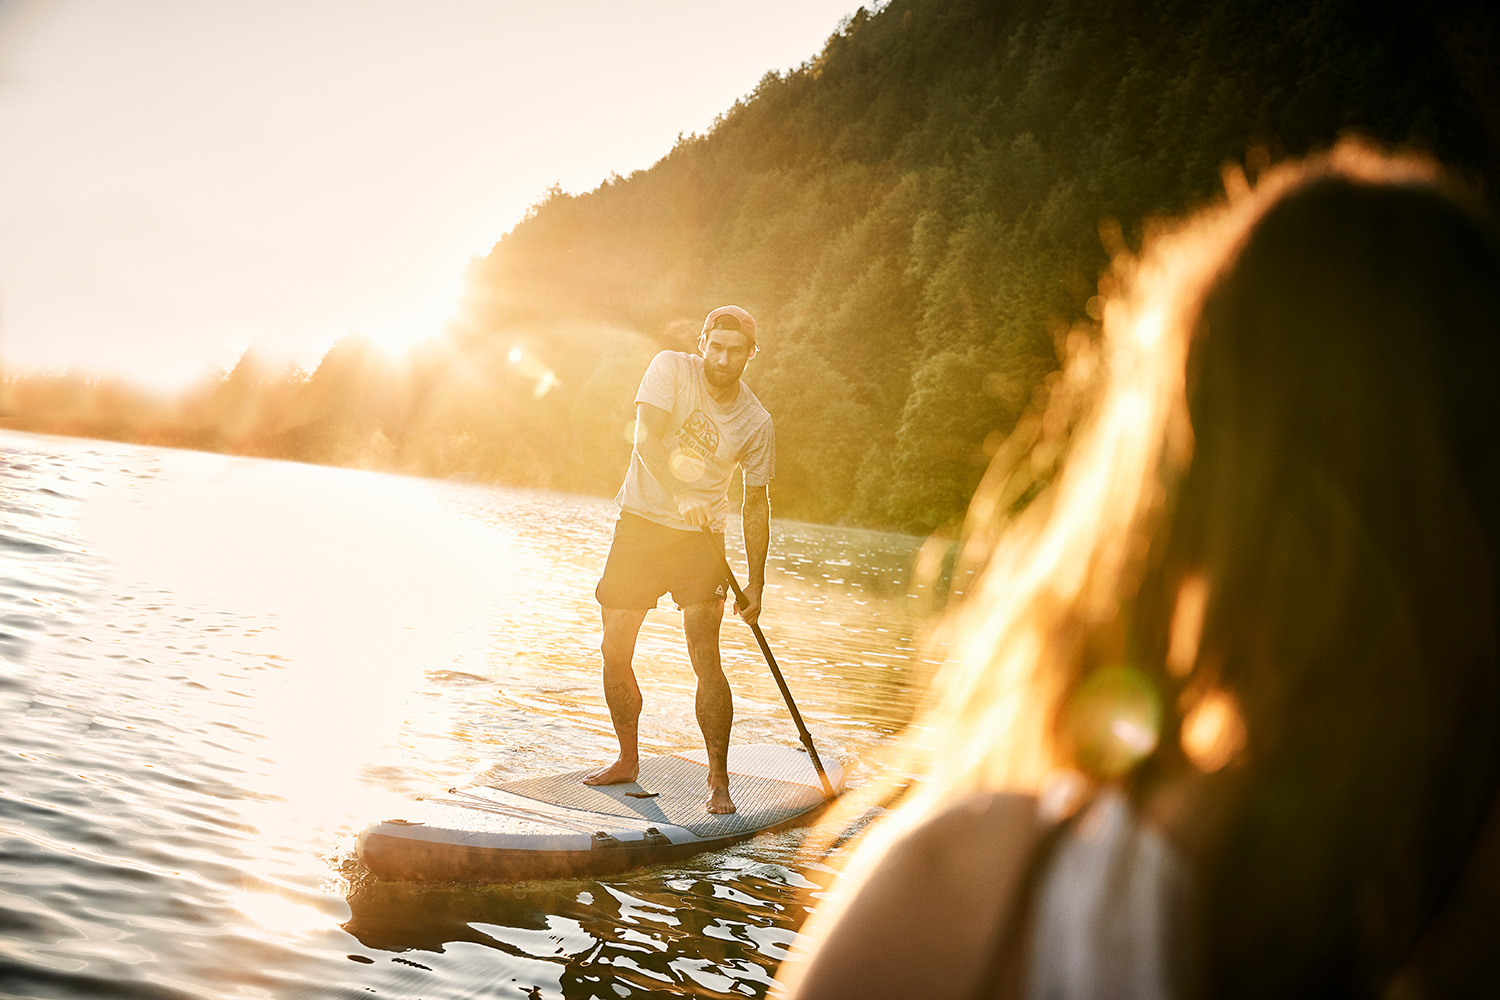 Man paddling towards a woman in the sunrise on a stand up paddle